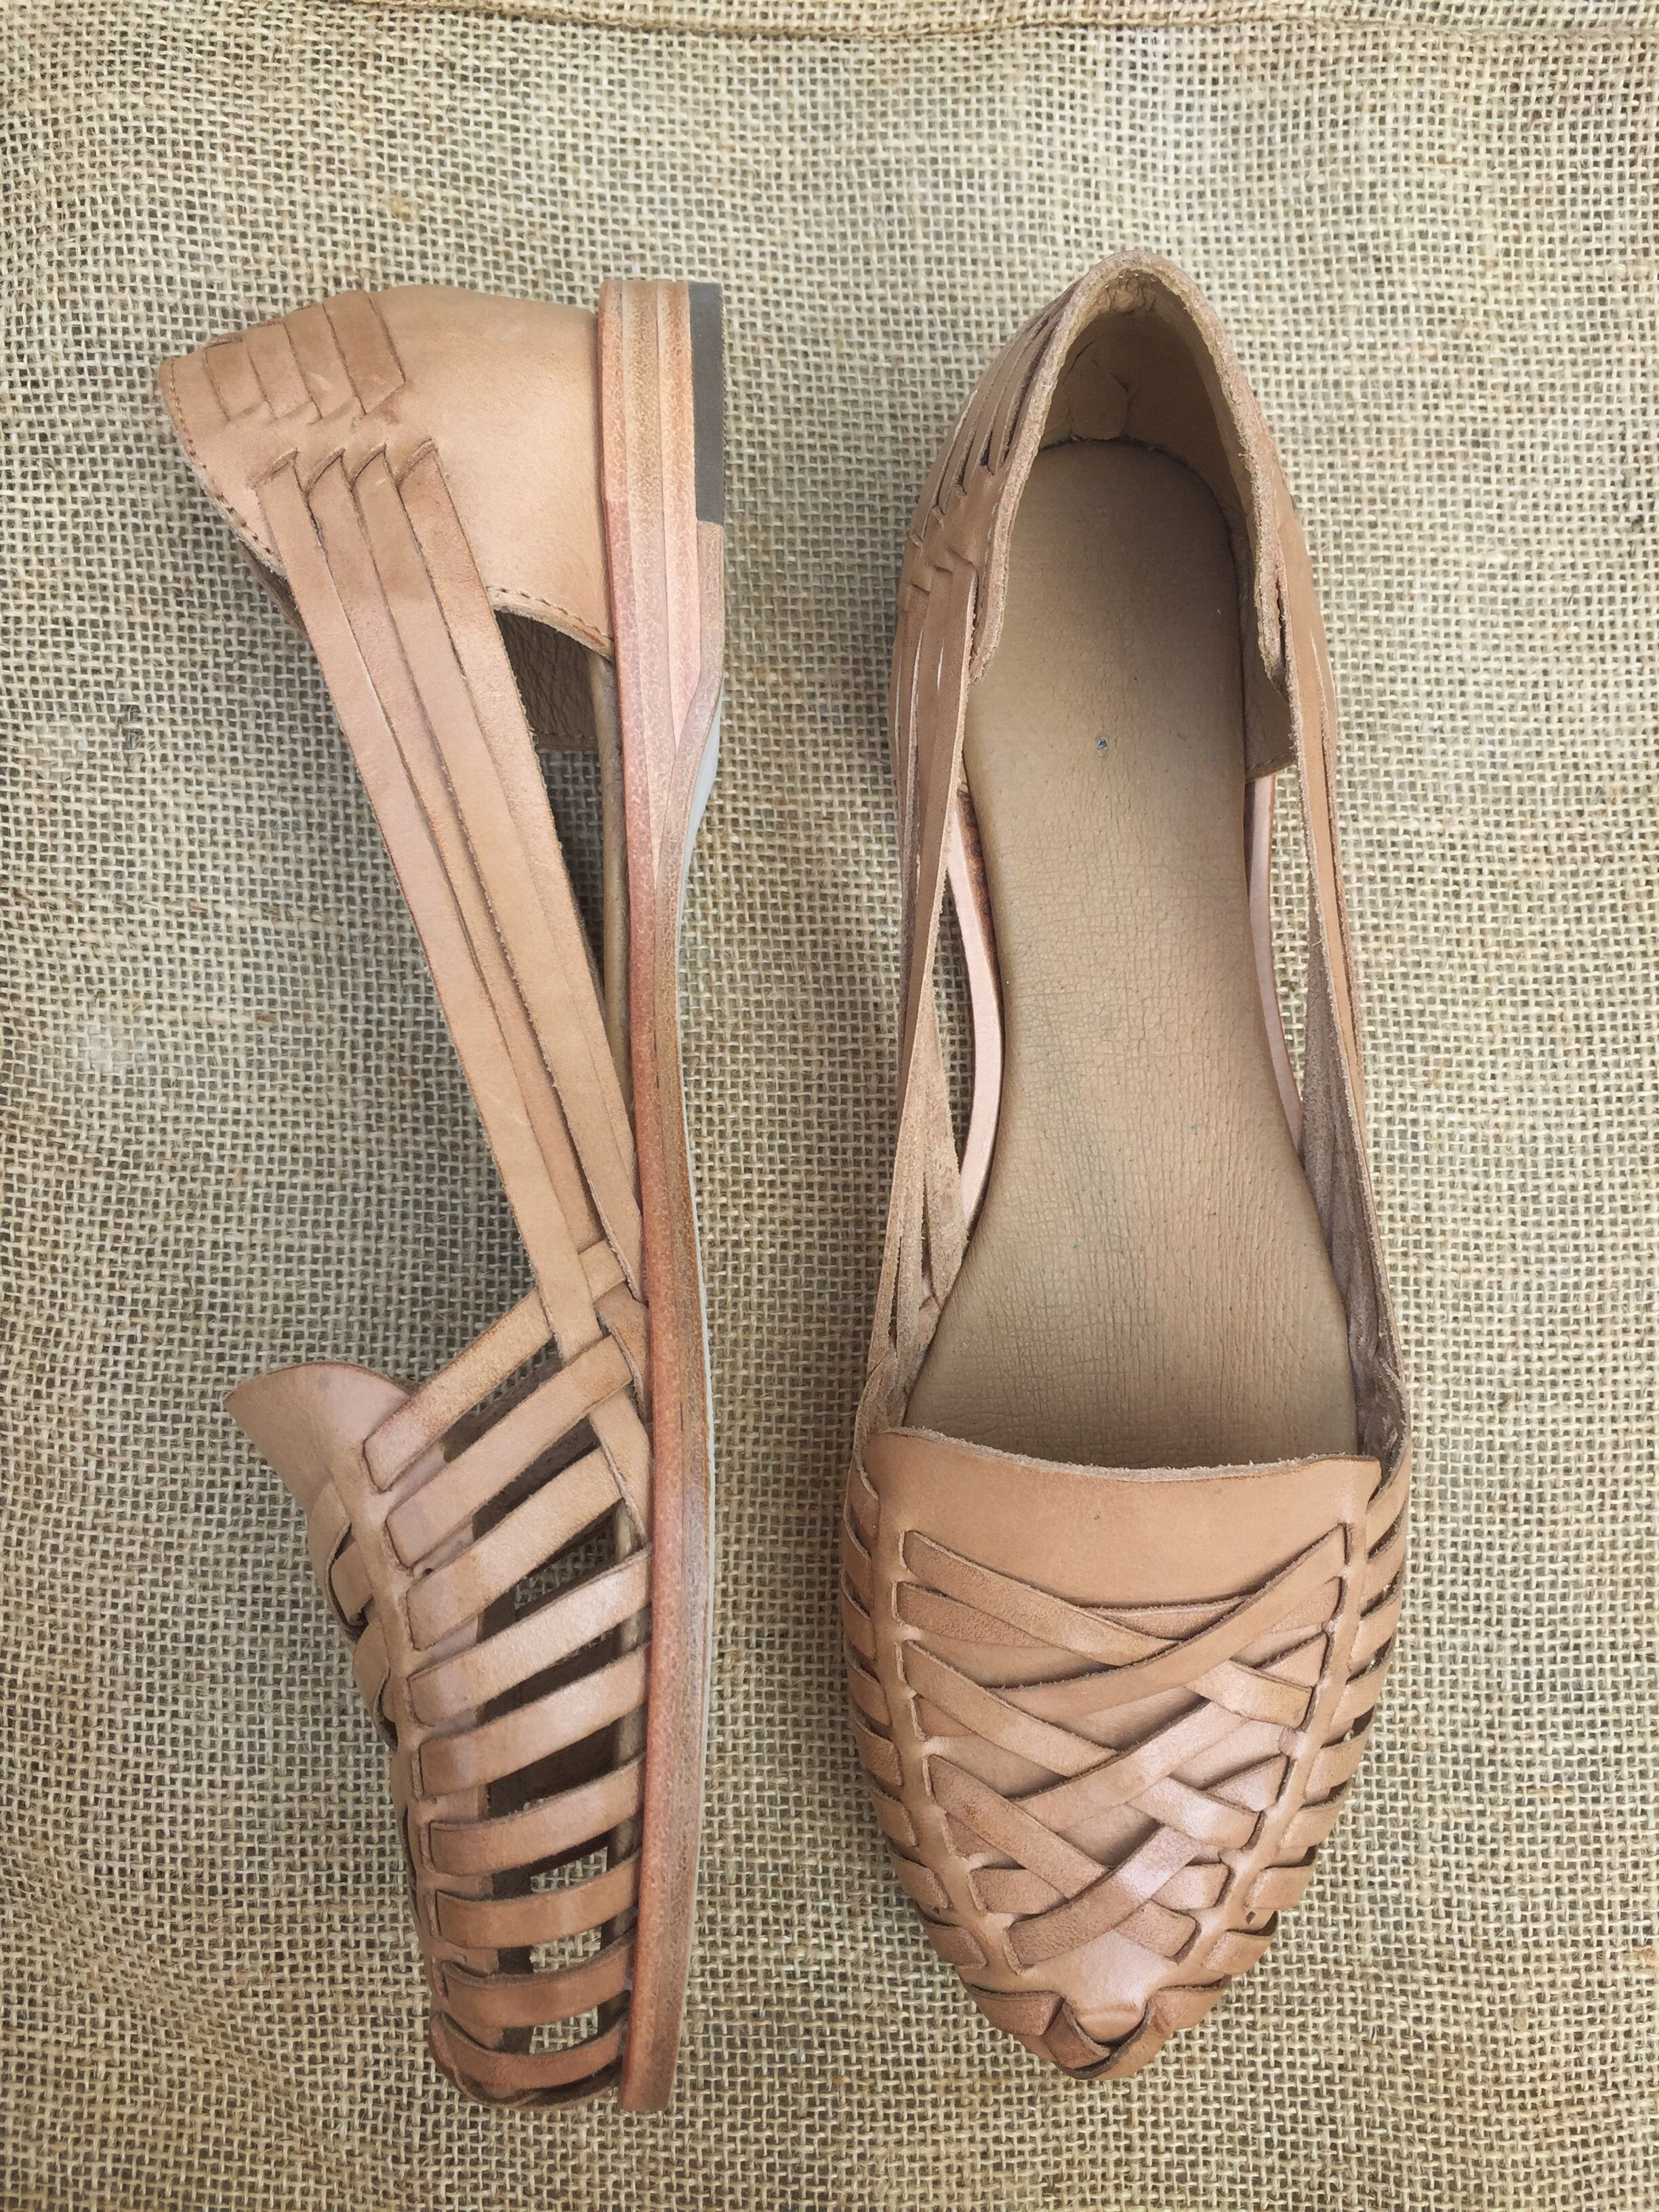 468e5f6741c Traditional Mexican woven leather huarache sandals by Stori.